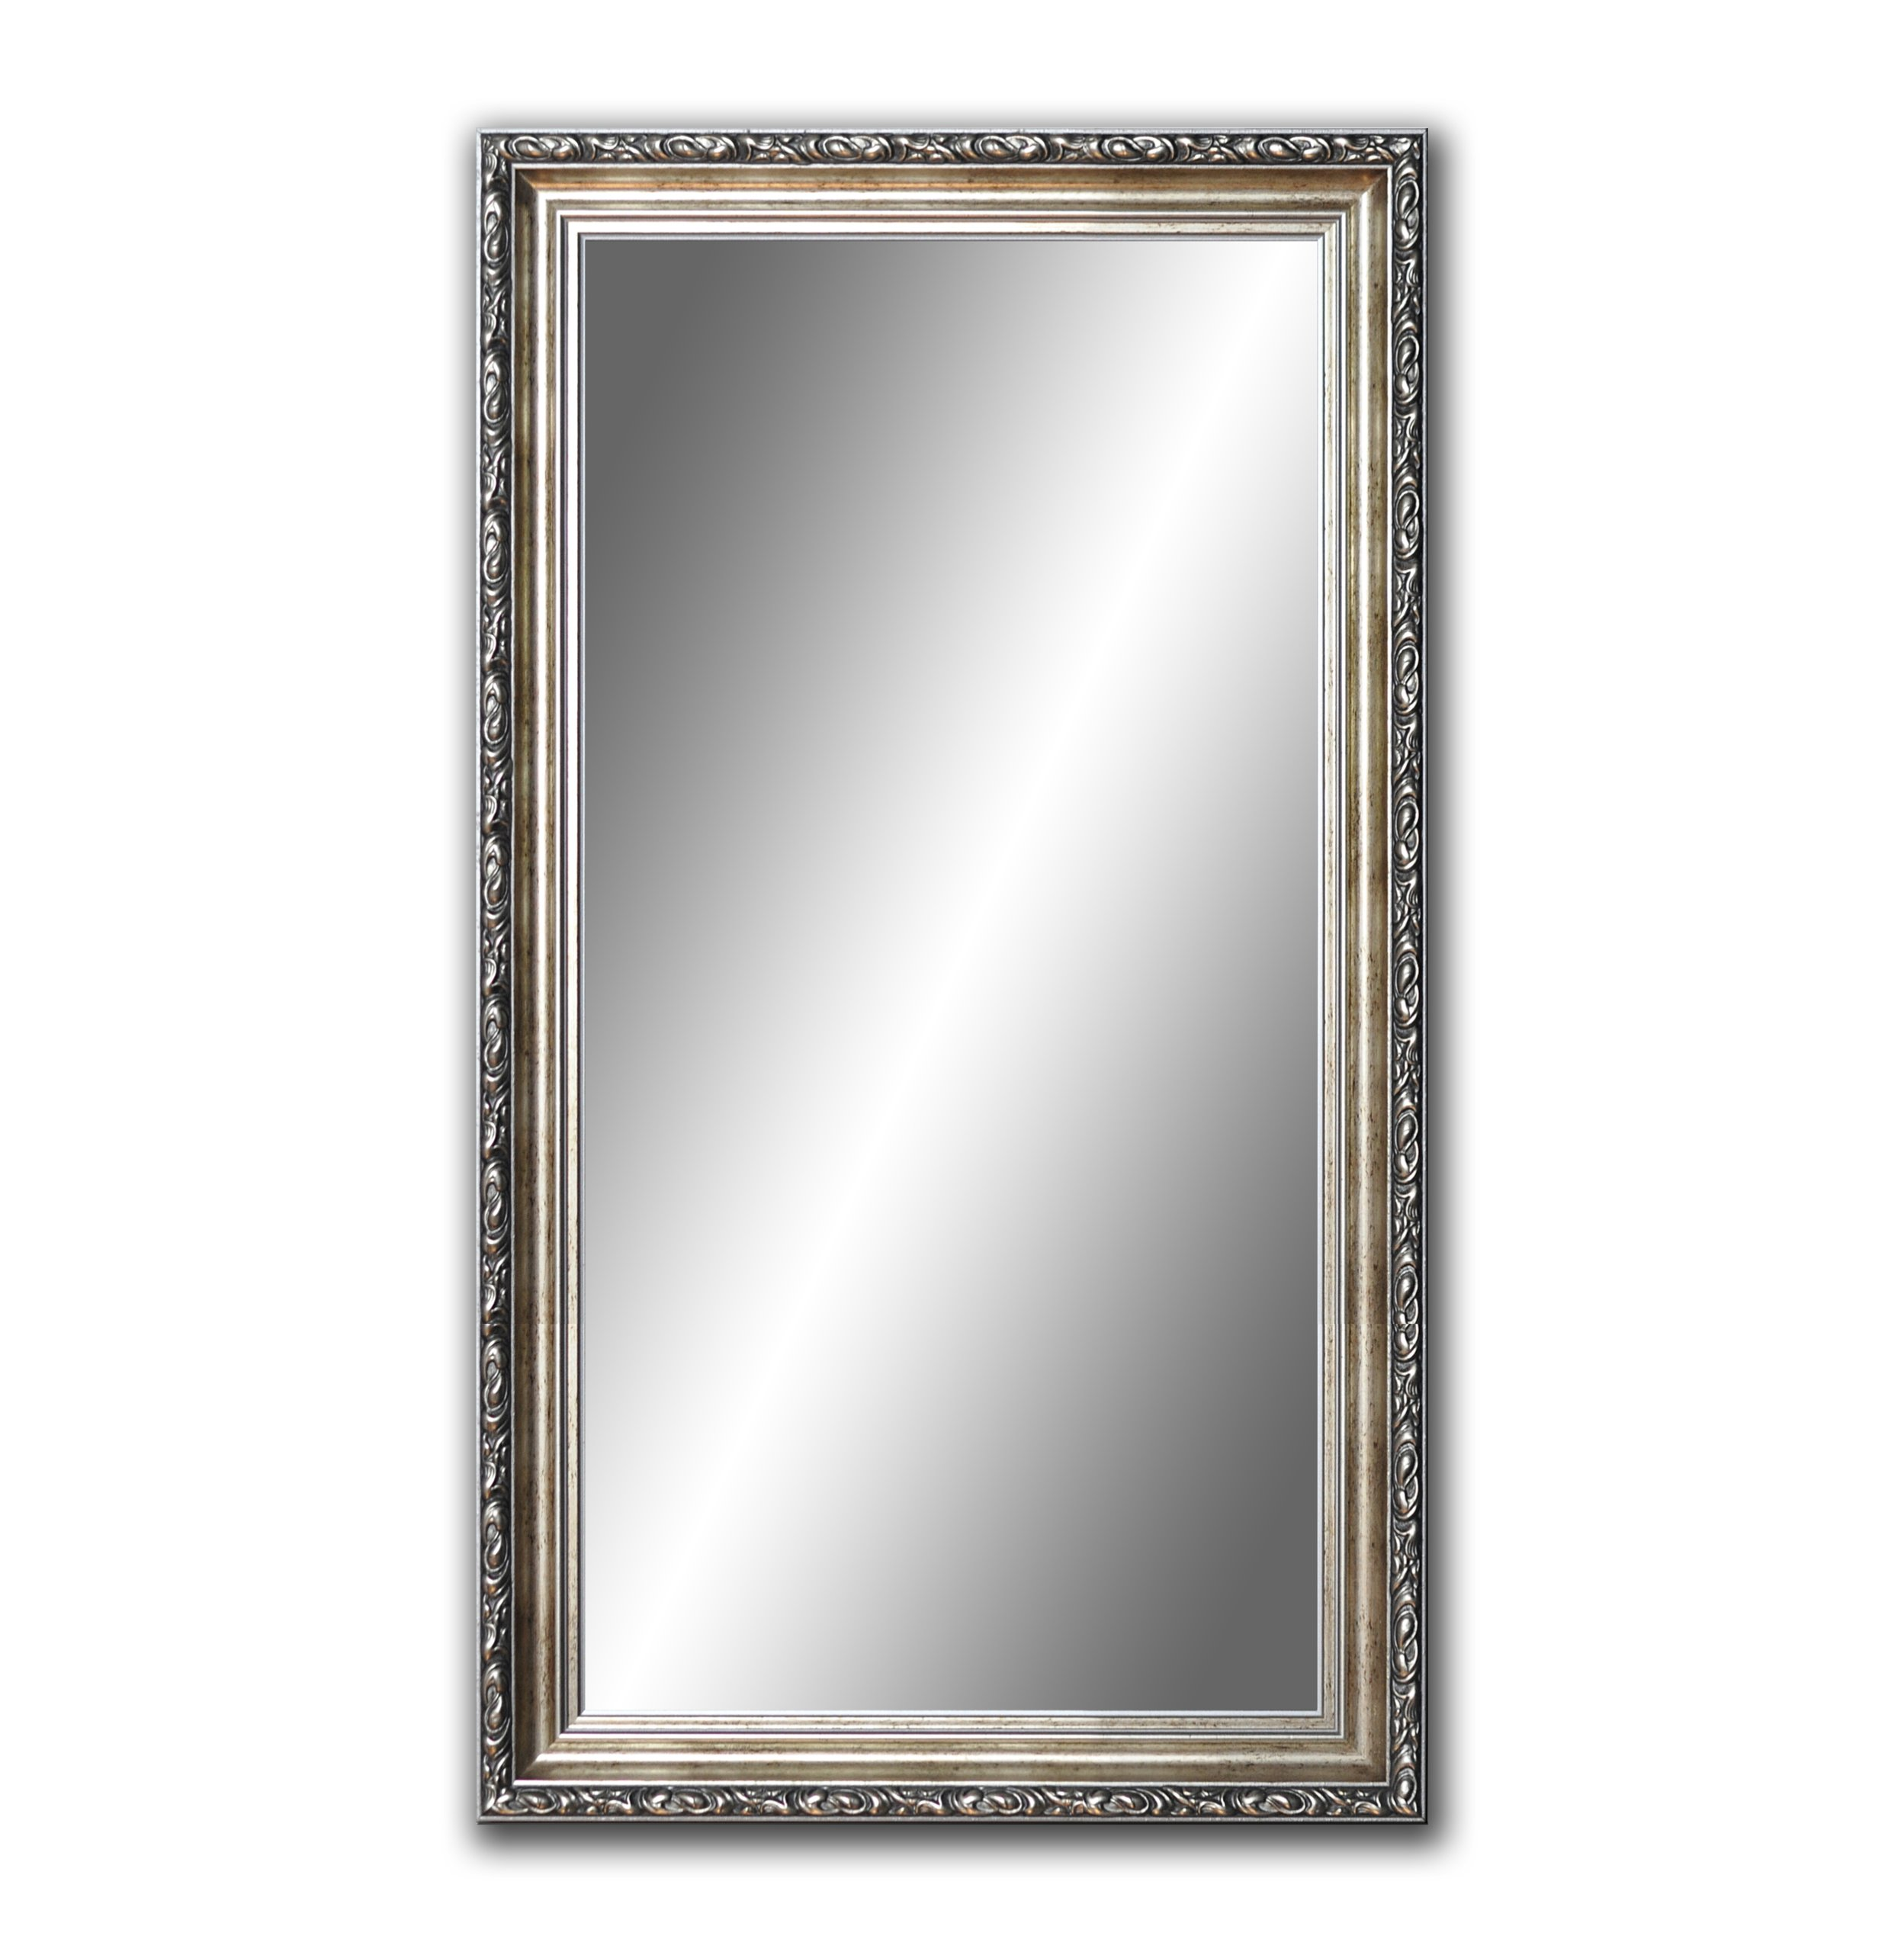 Item MIRROR SILVER GOLD 25 SIZES TO CHOOSE FROM +FREE SHIPPING